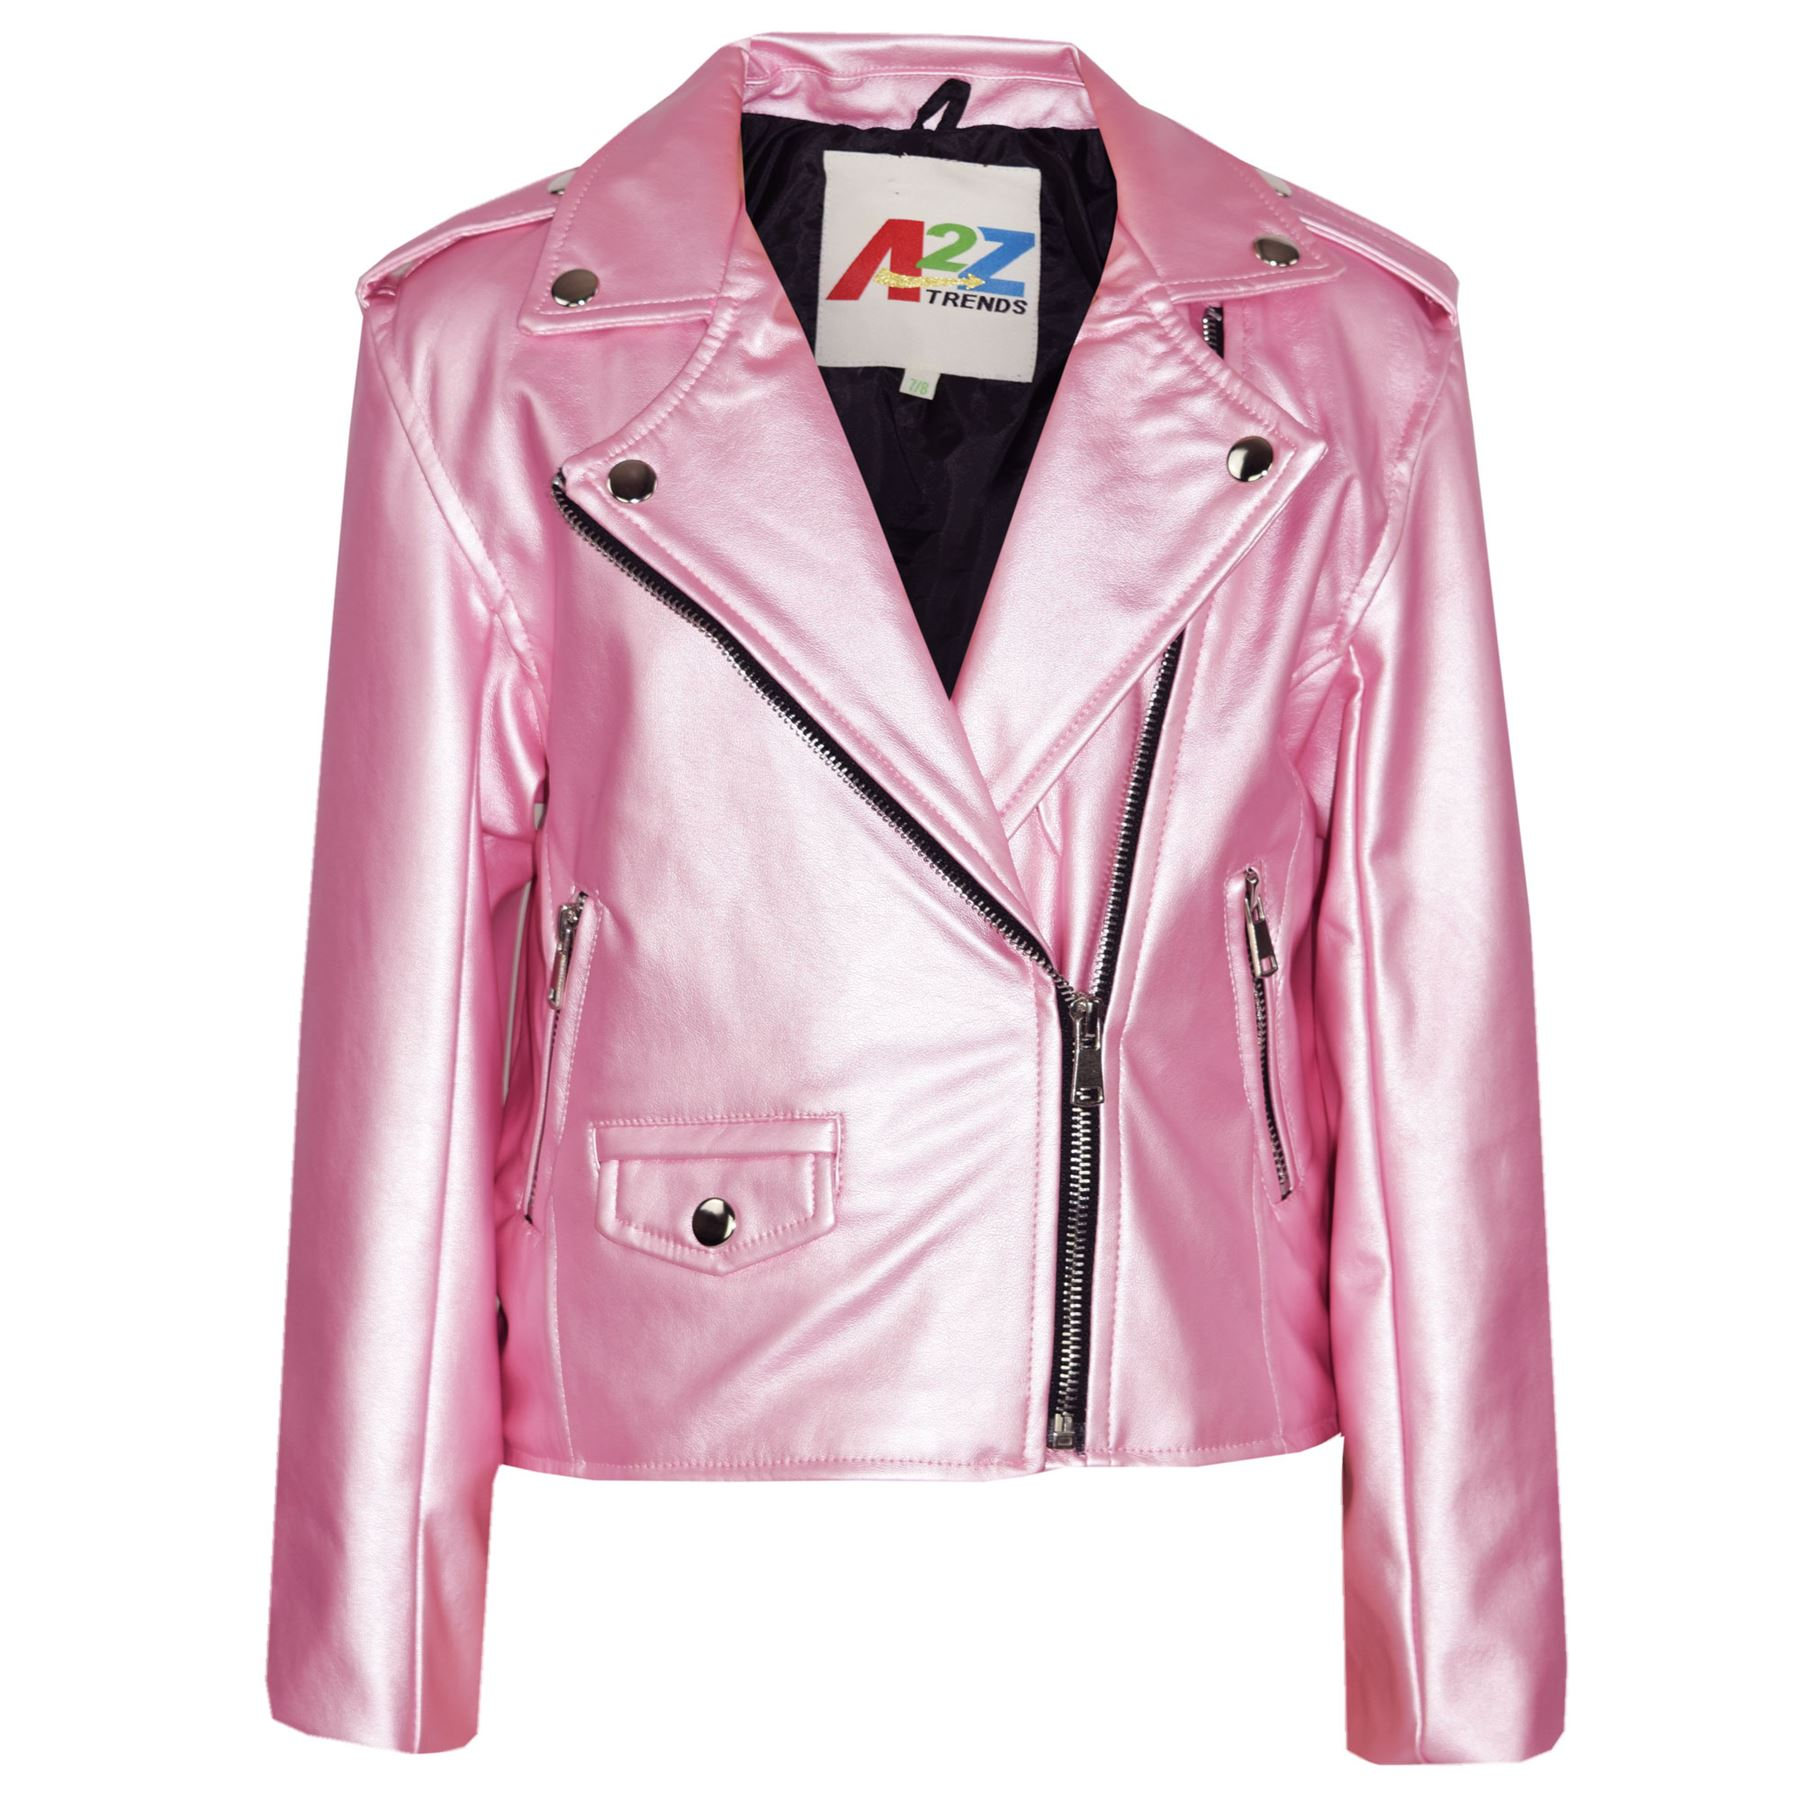 Kids Jacket Girls Designer's PU Leather Jackets Zip Up ...